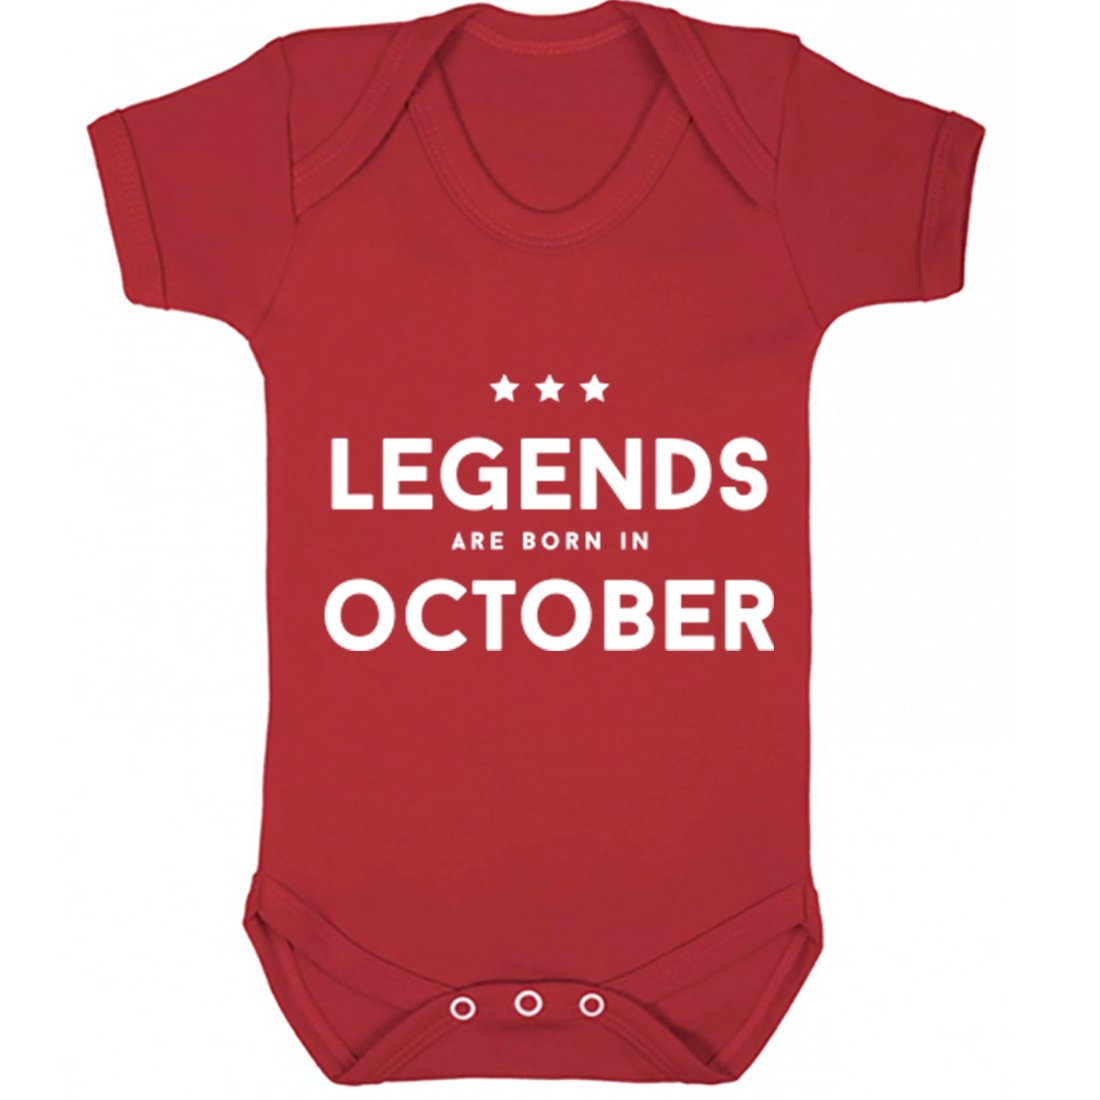 Illustrated Identity Legends Are Born In October Vest Boys Girls